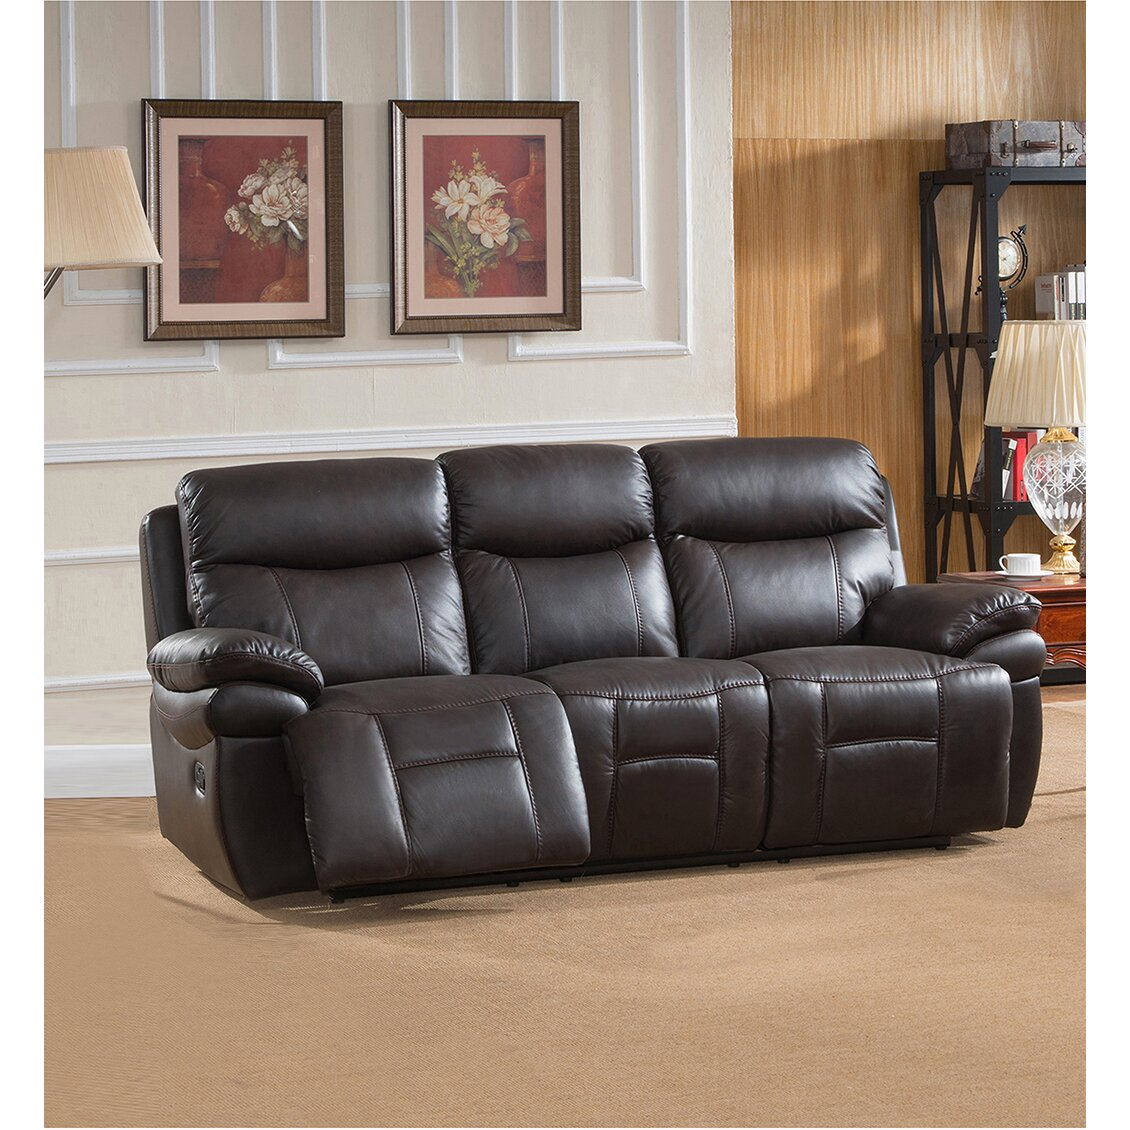 Amax rushmore 3 piece leather living room set wayfair for Living room 3 piece sets